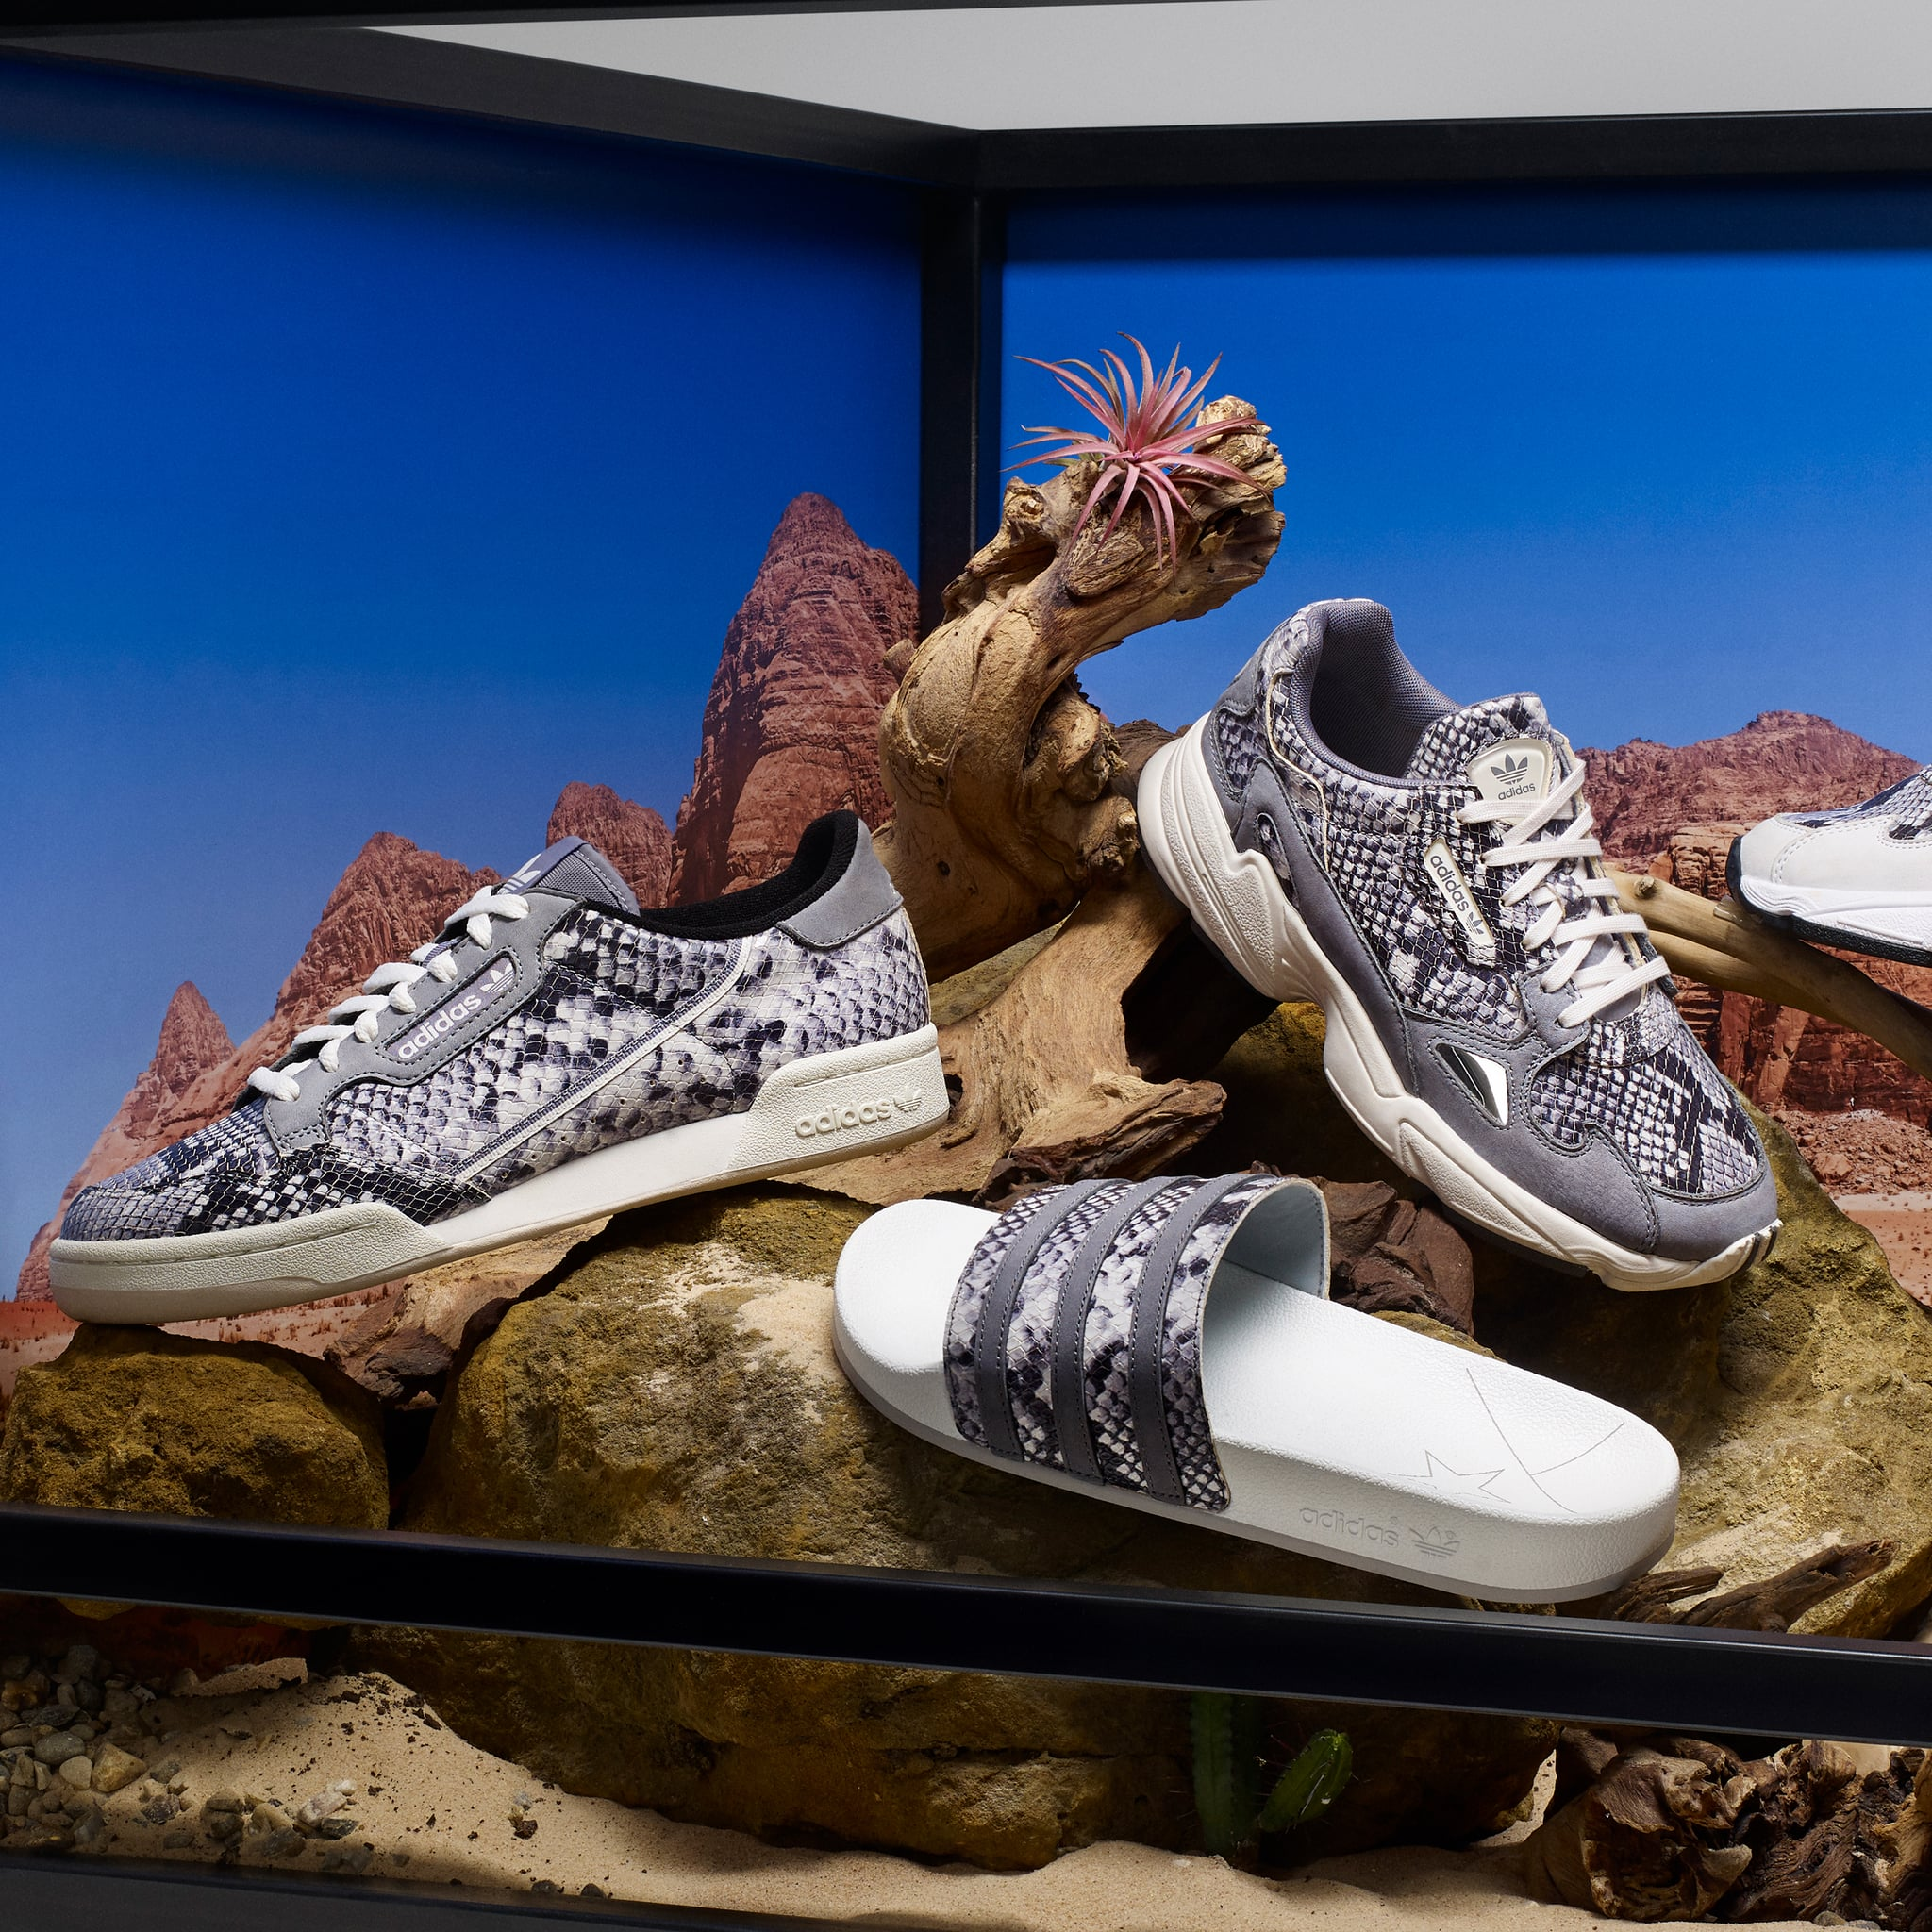 Adidas Snakeskin Sneakers Collection